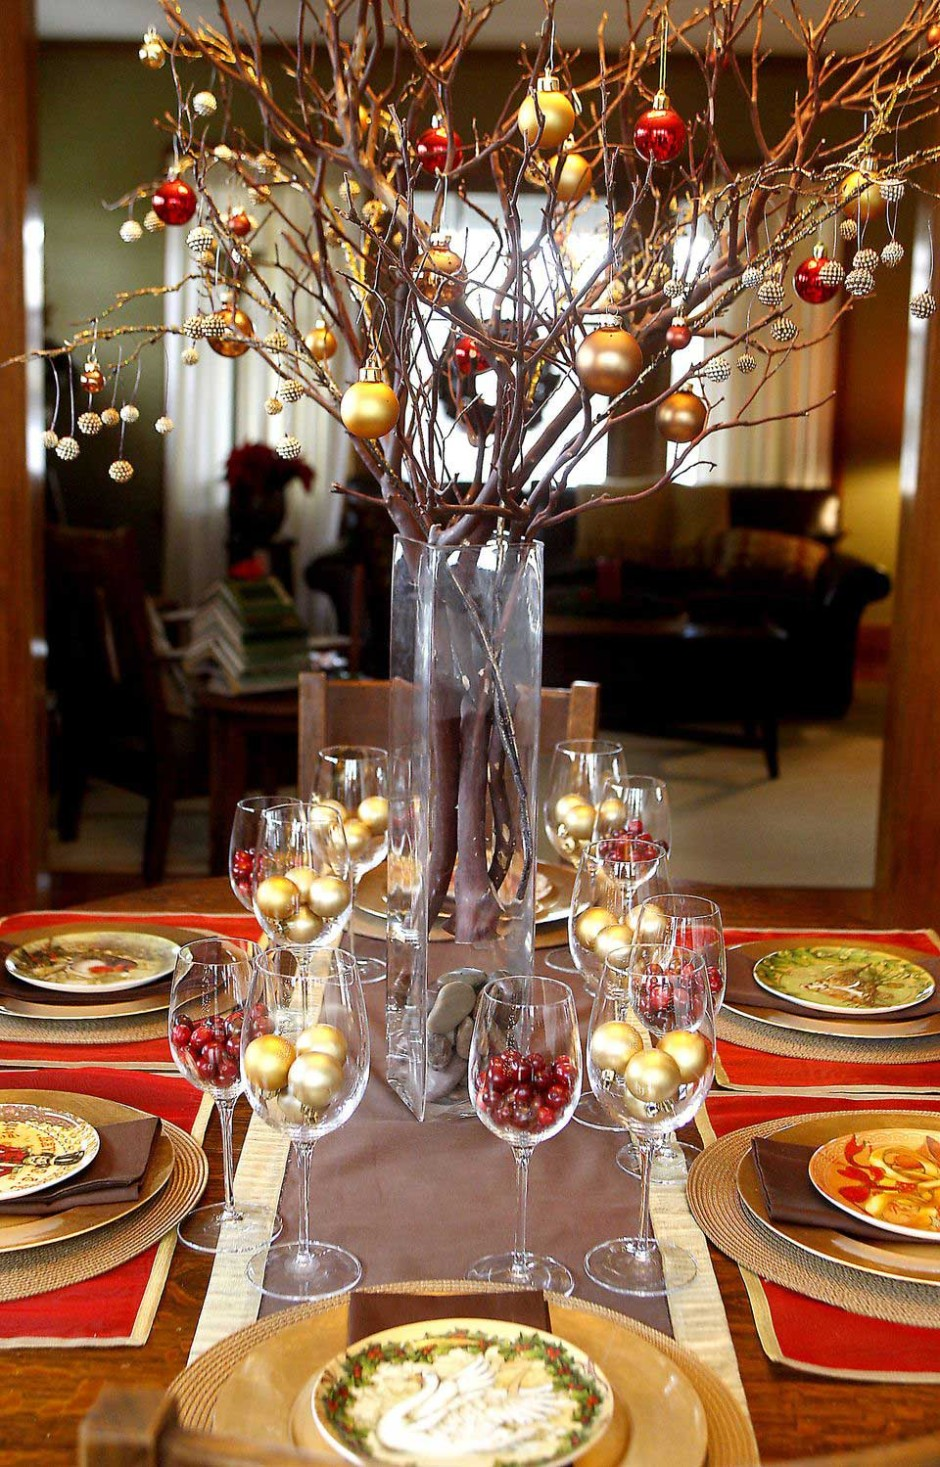 Luxury Christmas Party Centerpiece Idea with Gold Christmas Balls dwellingdecor